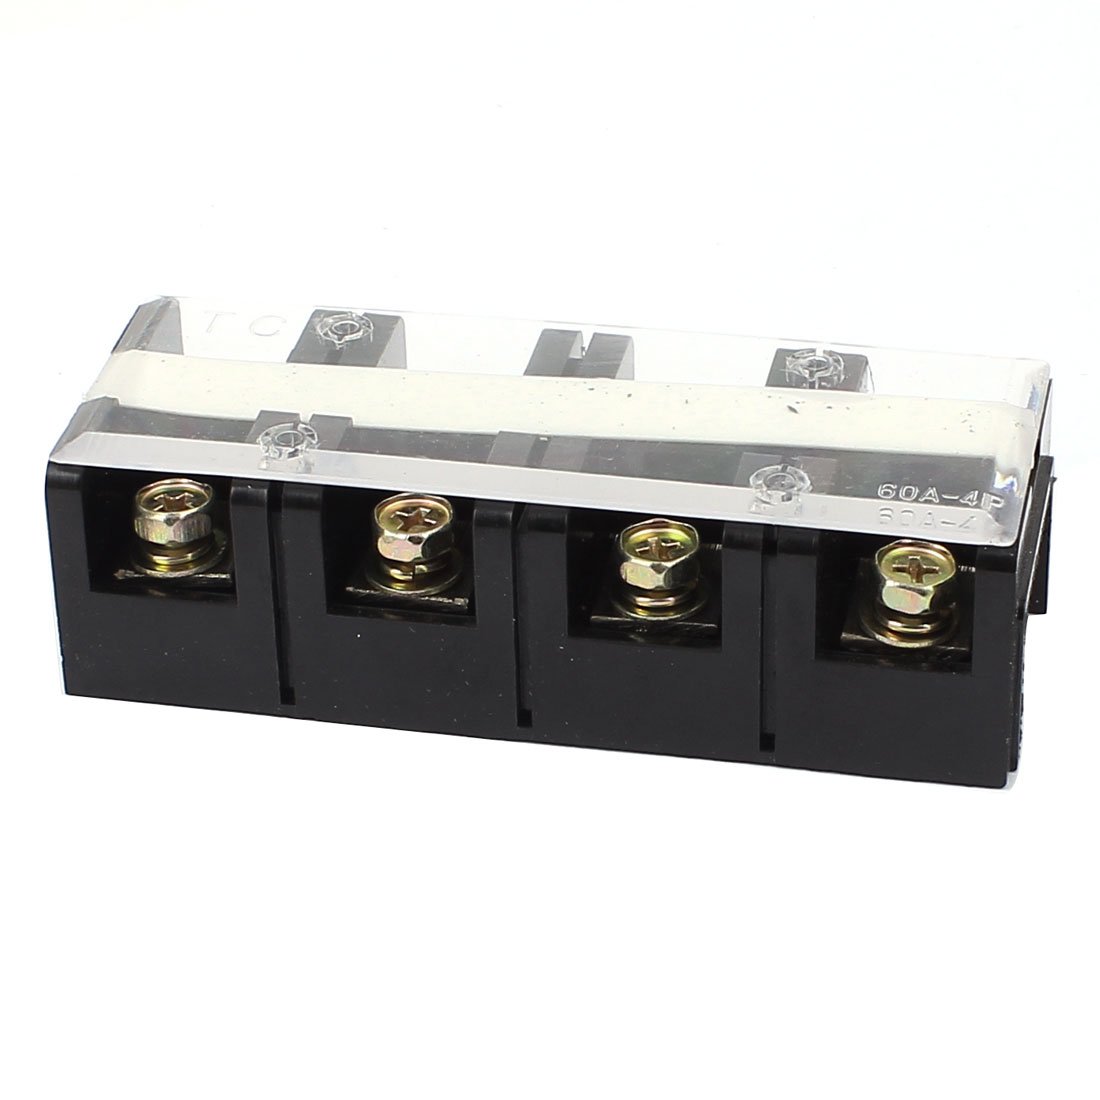 TC-604 60A Double Row 4 Position Screw Terminal Electric Barrier Strip Block